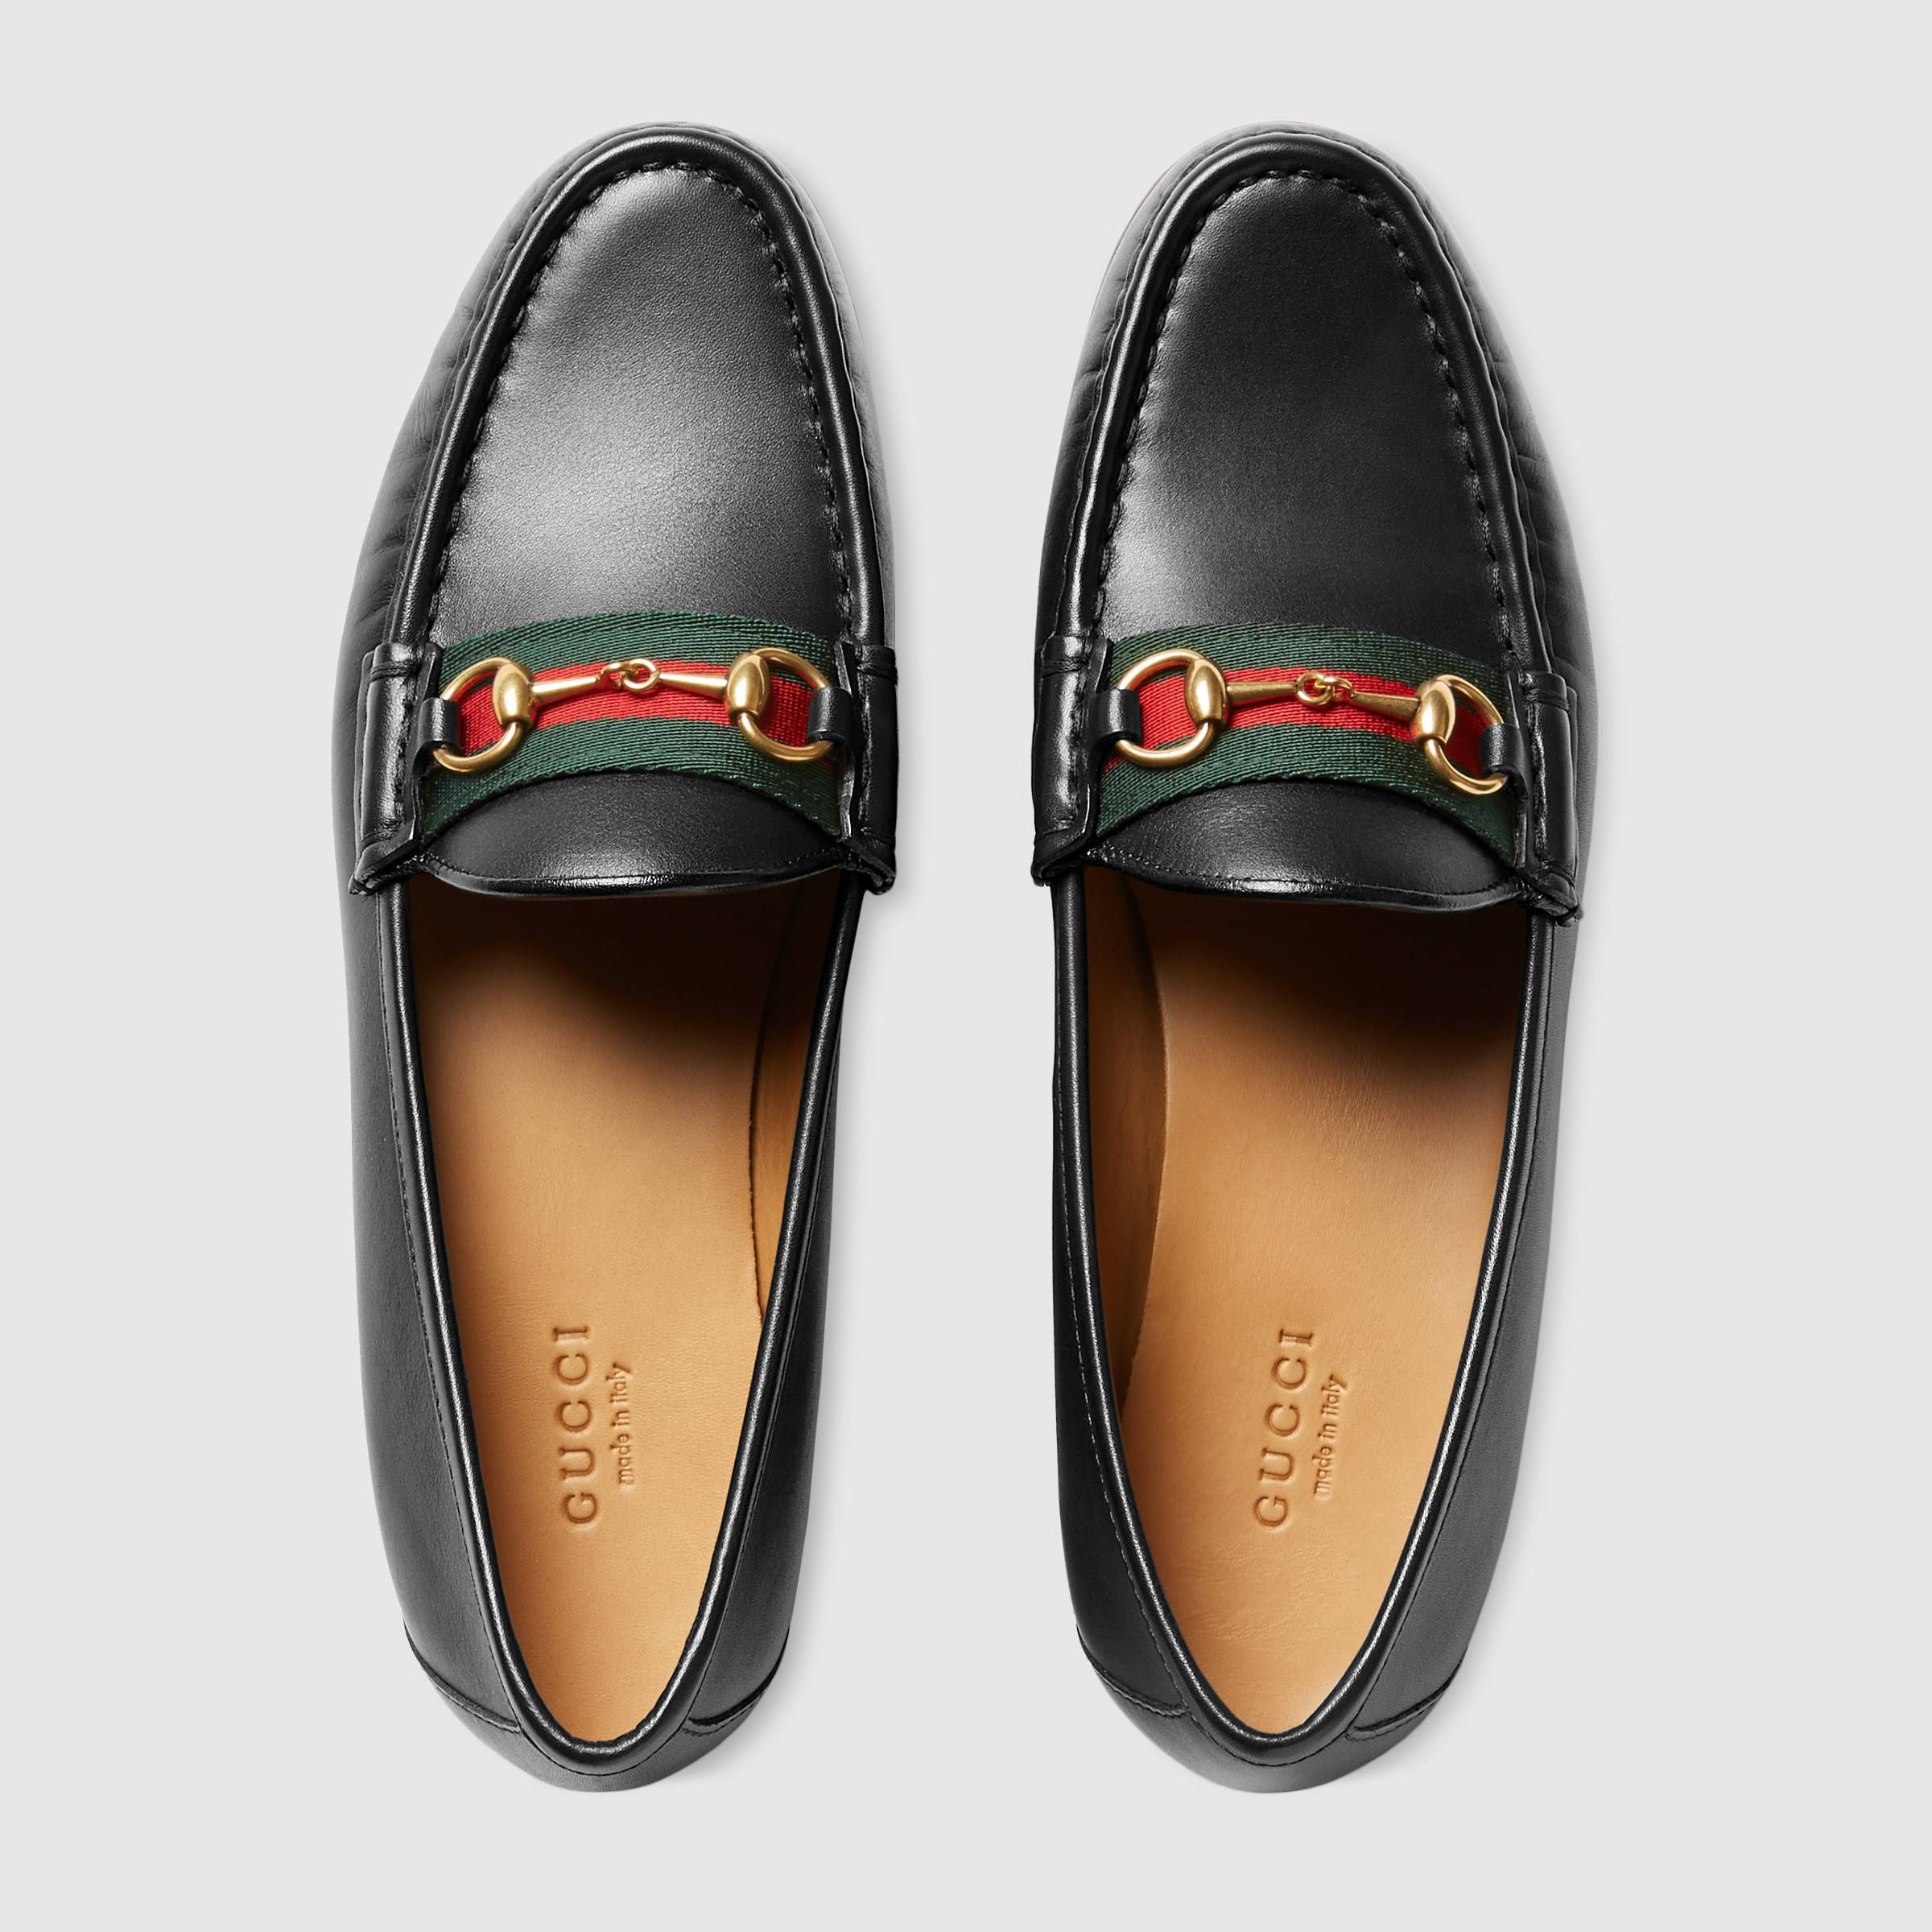 3693ccf8e1e Gucci Women - Gucci Black Leather horsebit loafers with web -  640.00